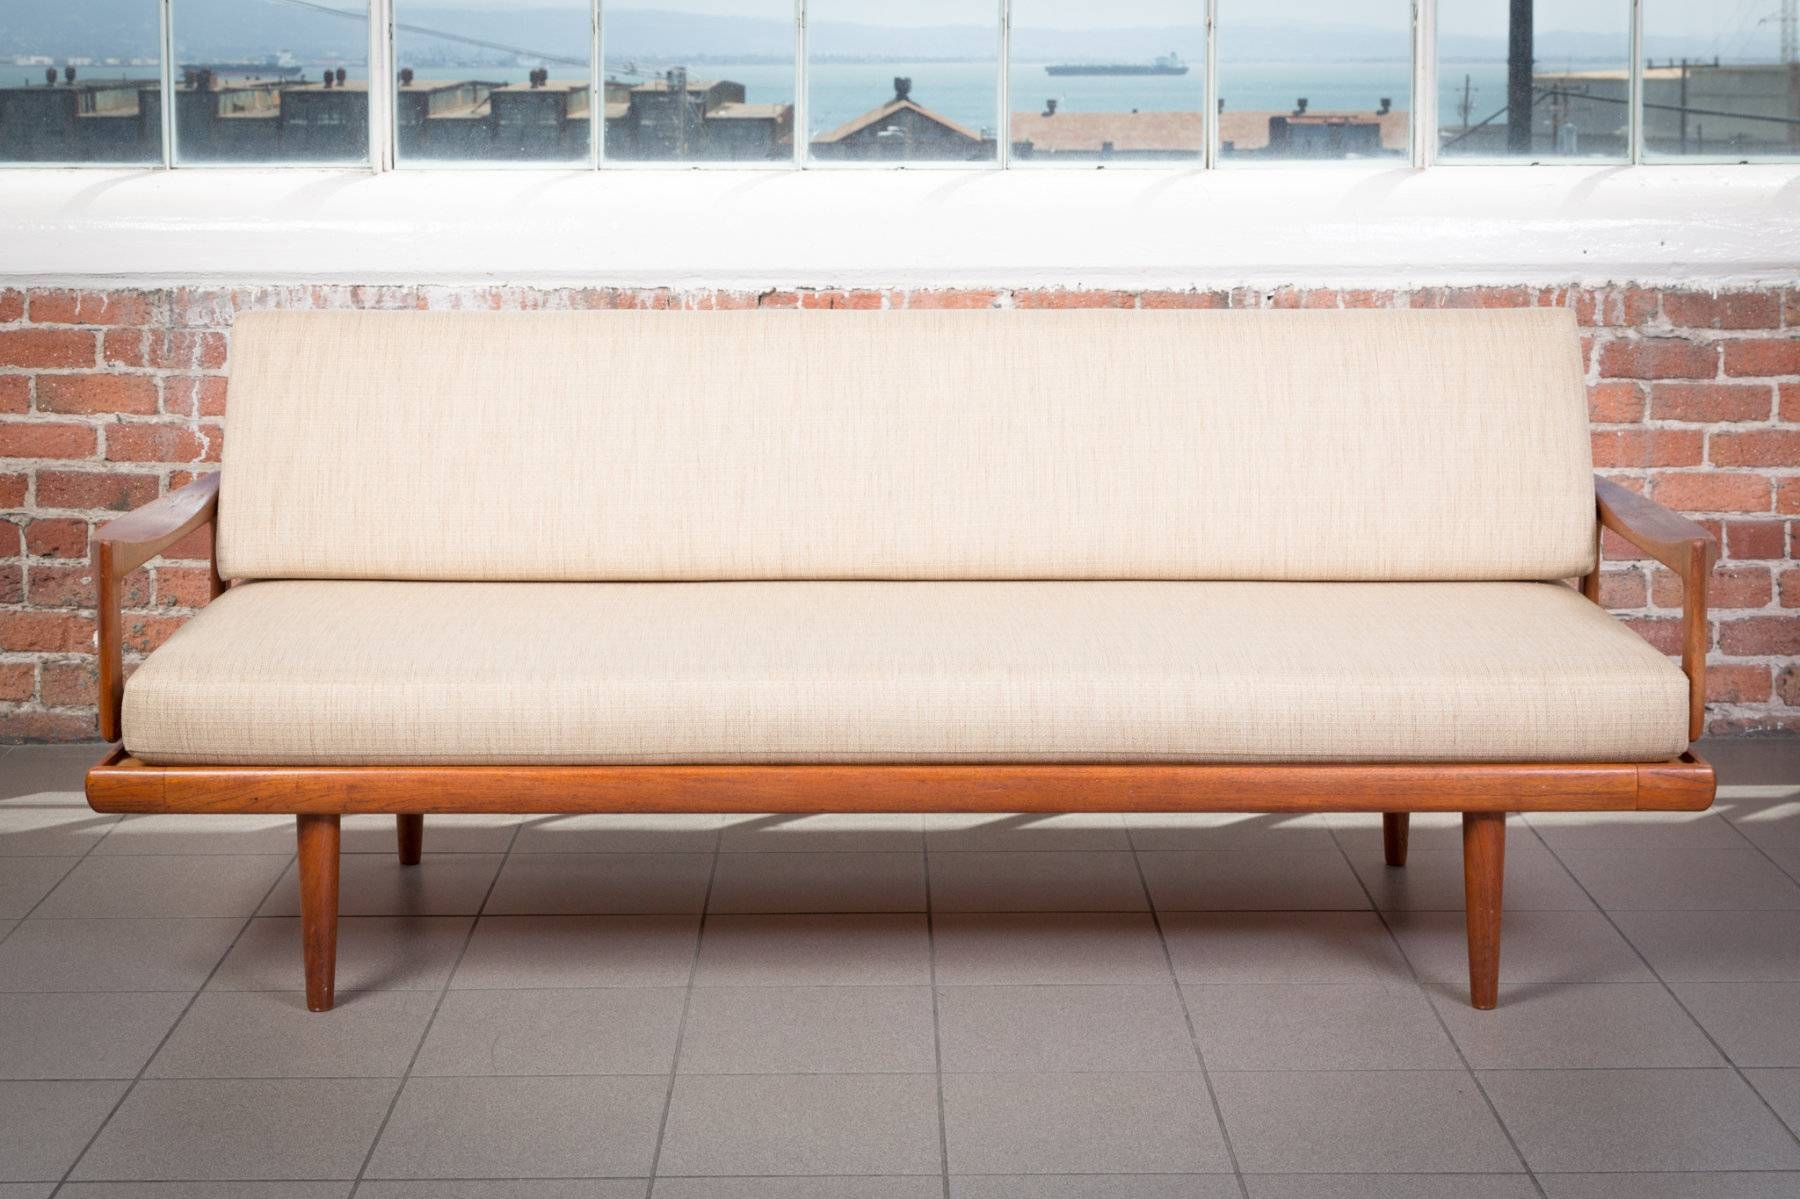 The Jacamar | Danish Modern Sofa | Piecesviolet - Vintage Rentals intended for Modern Danish Sofas (Image 15 of 15)